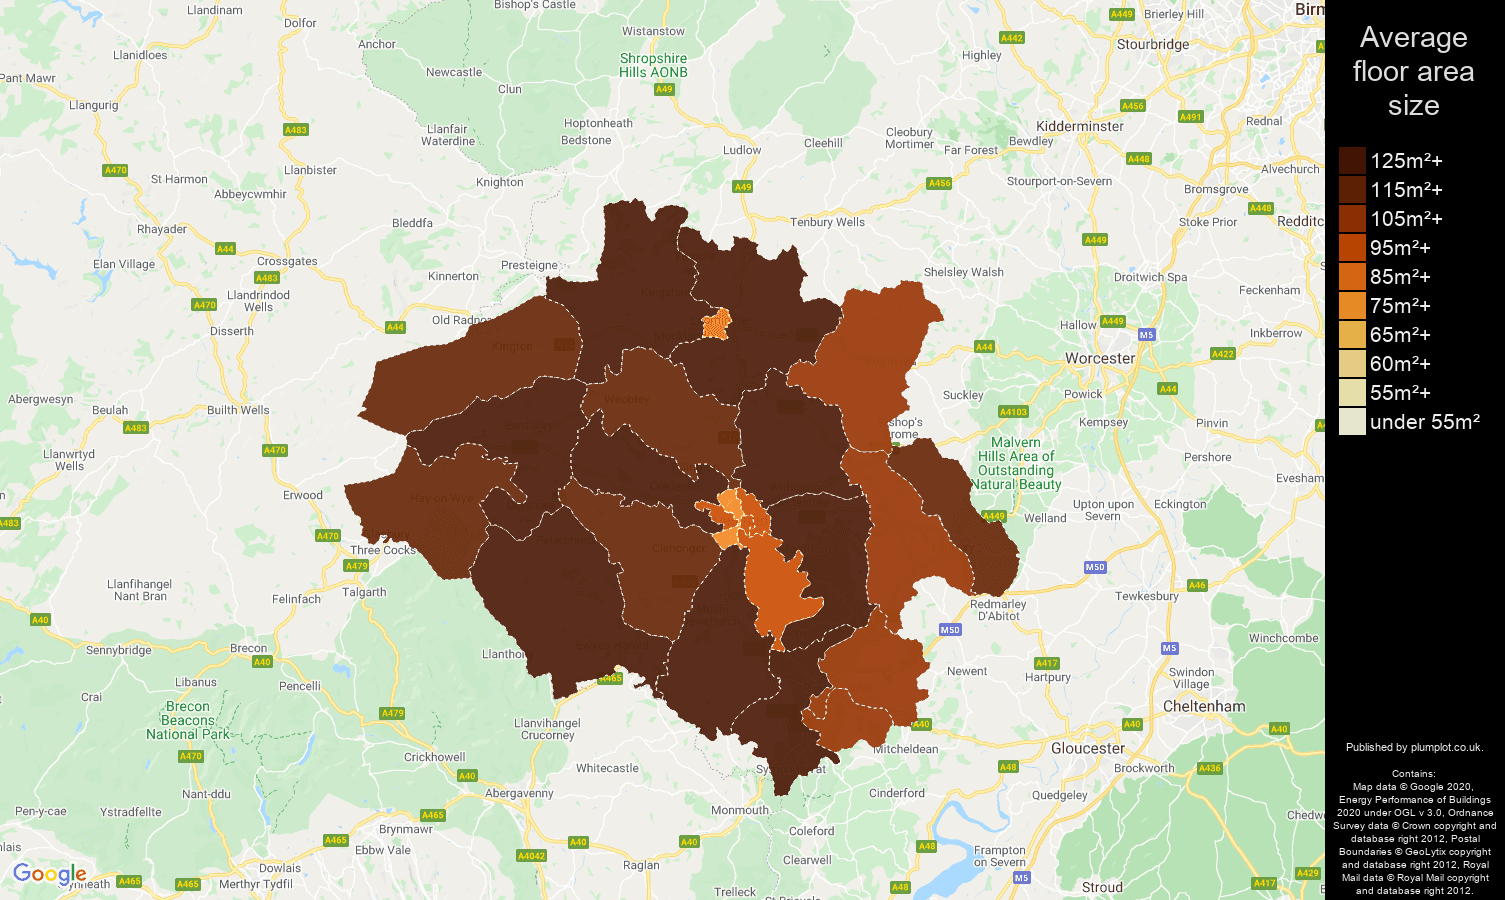 Hereford map of average floor area size of houses